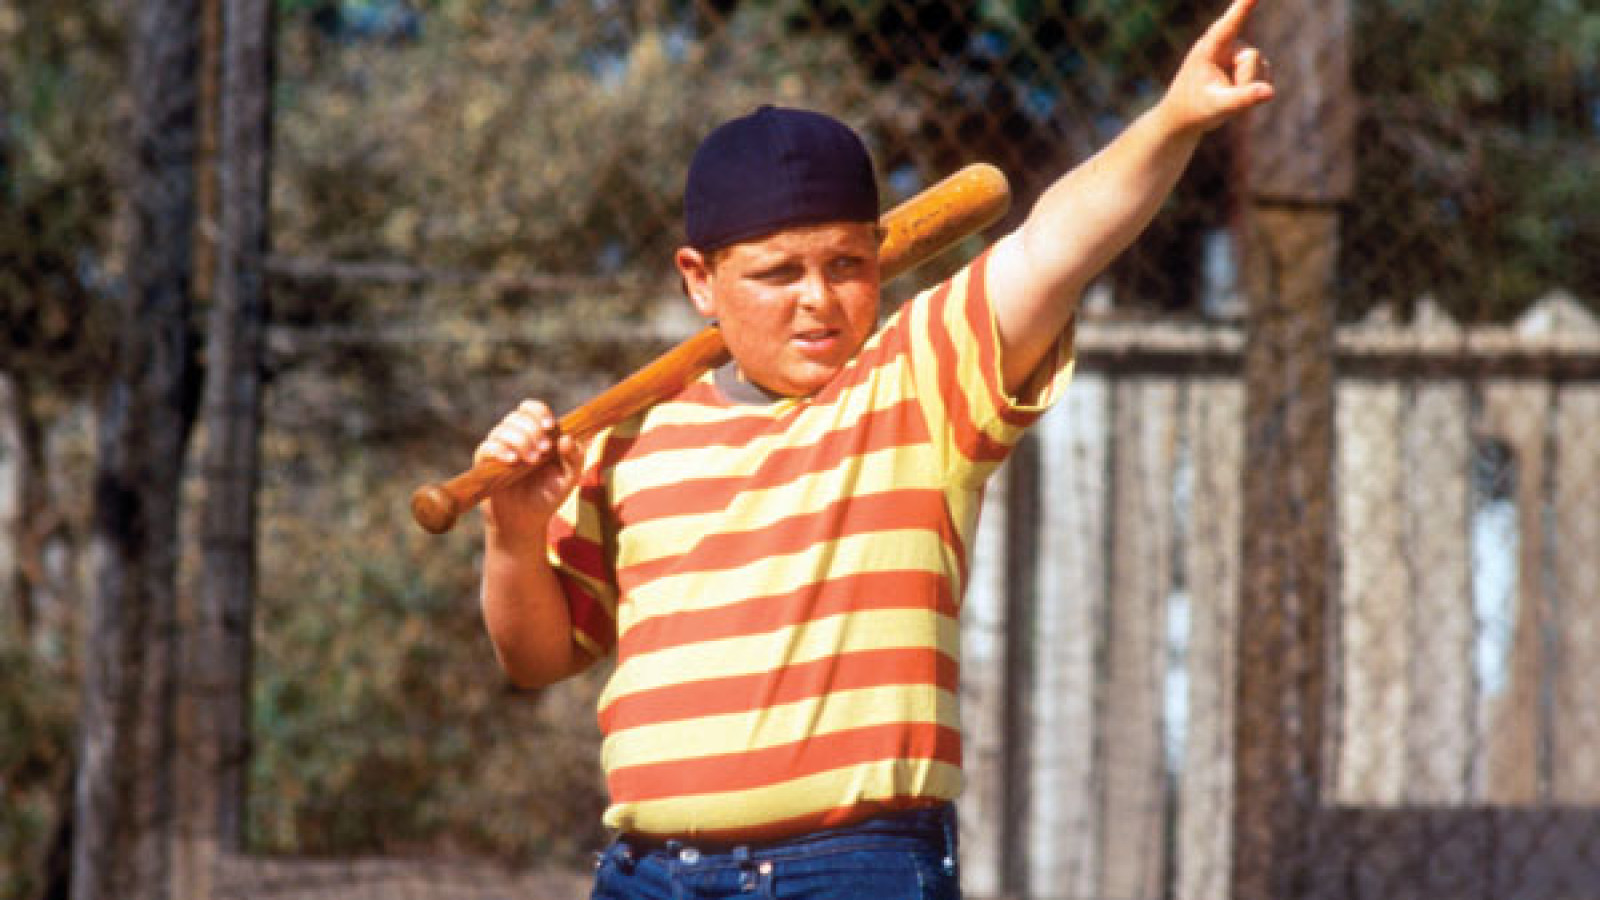 Download The Sandlot Wallpaper Gallery